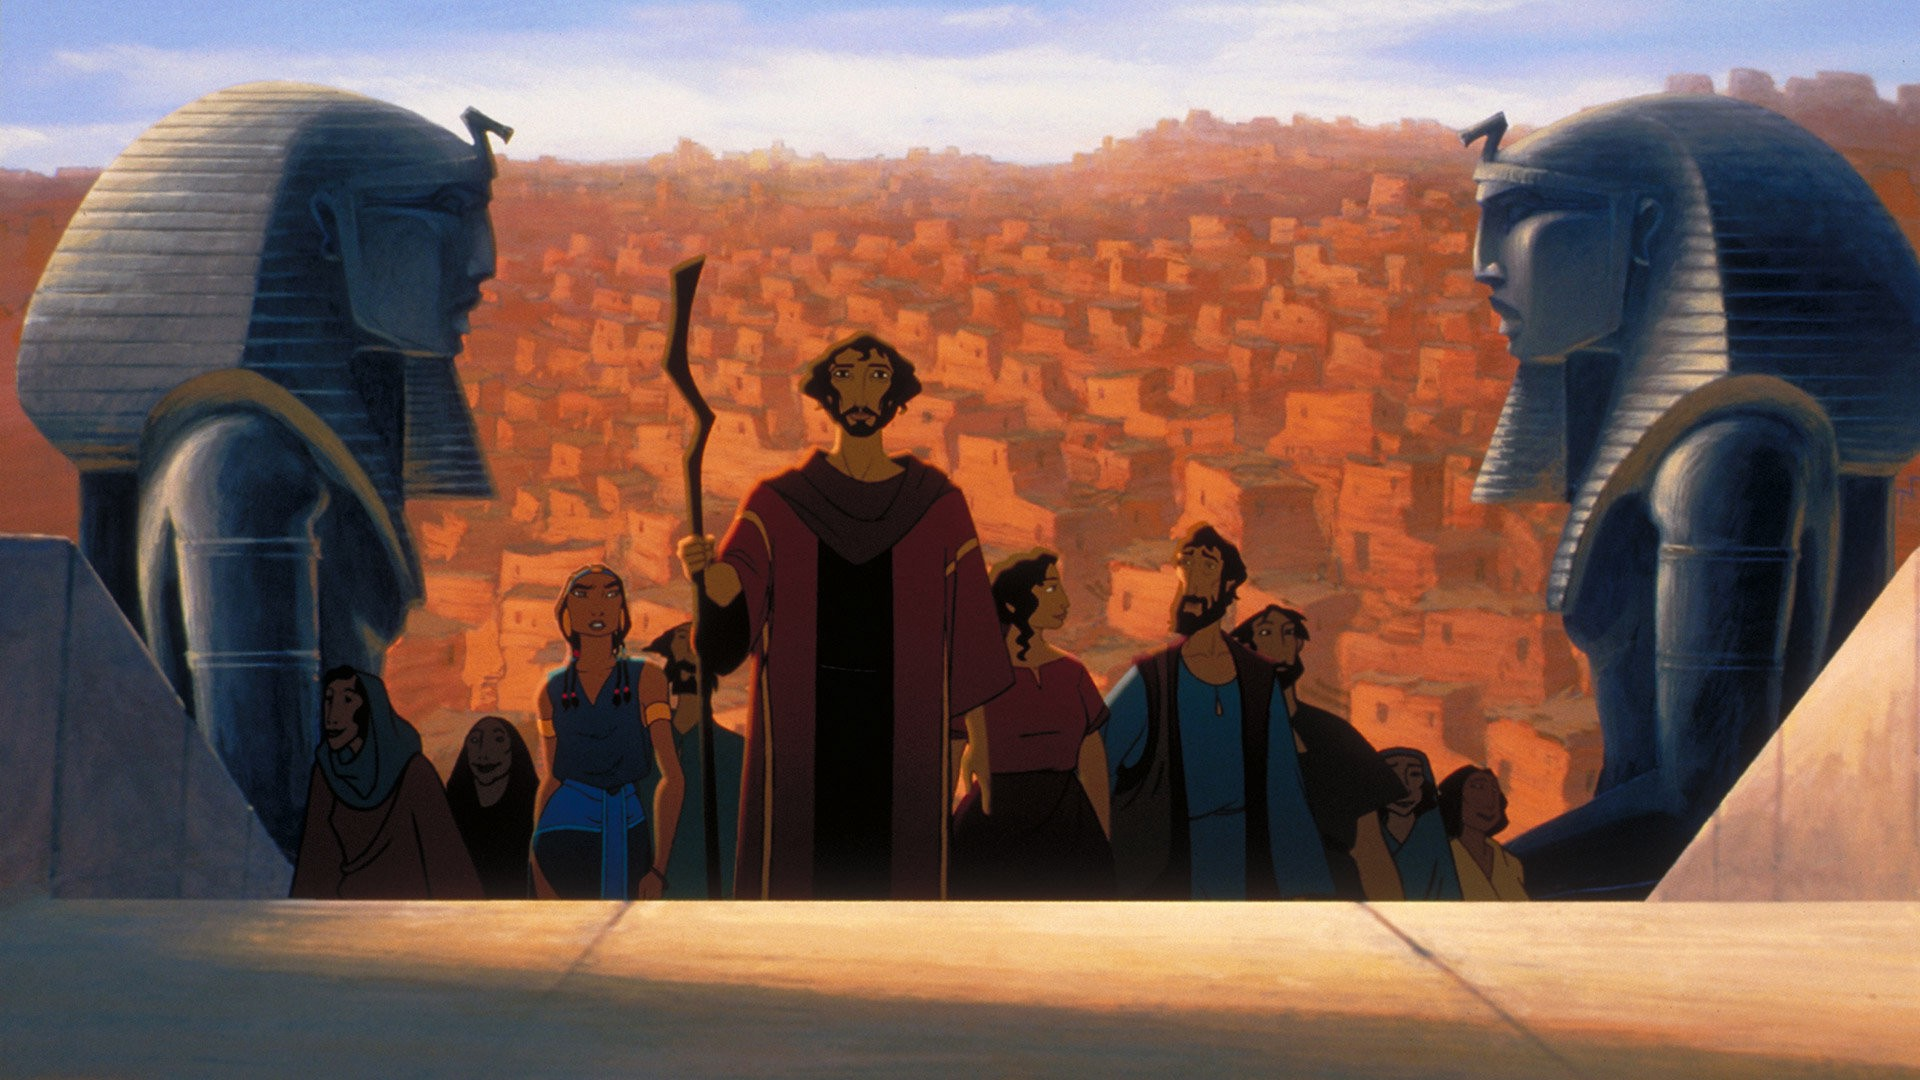 5 Reasons The Prince of Egypt Is One of the Best Bible Movies Ever